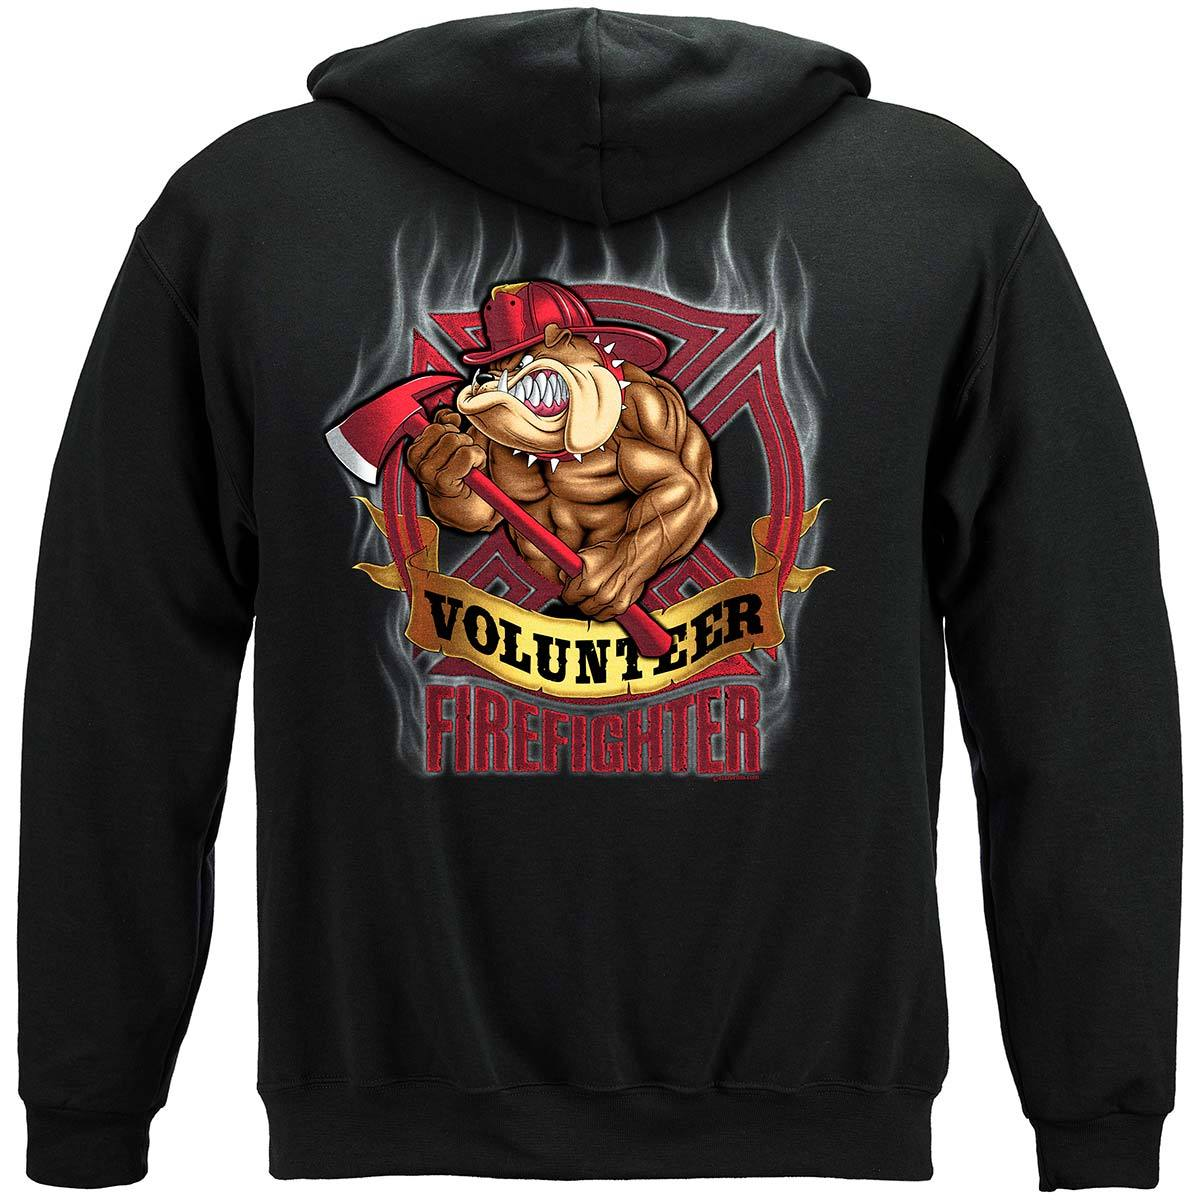 Fire Dog Volunteer Premium Hooded Sweat Shirt